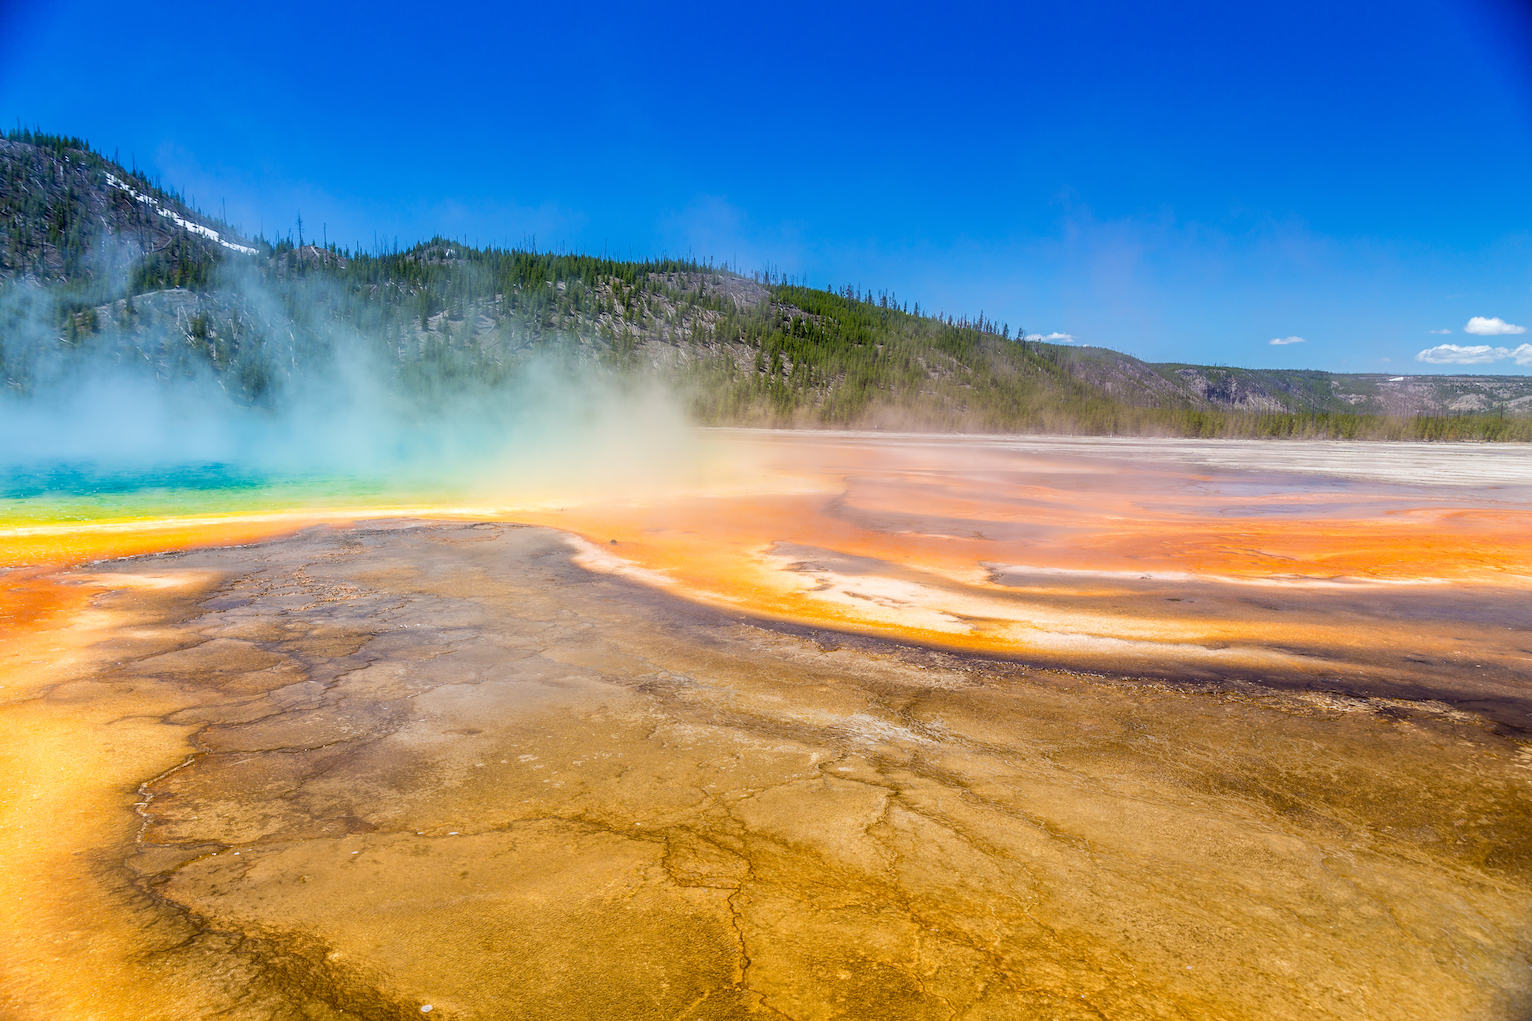 The Yellowstone supervolcano is making headlines yet again with a new swarm of earthquakes that started on February 8th.